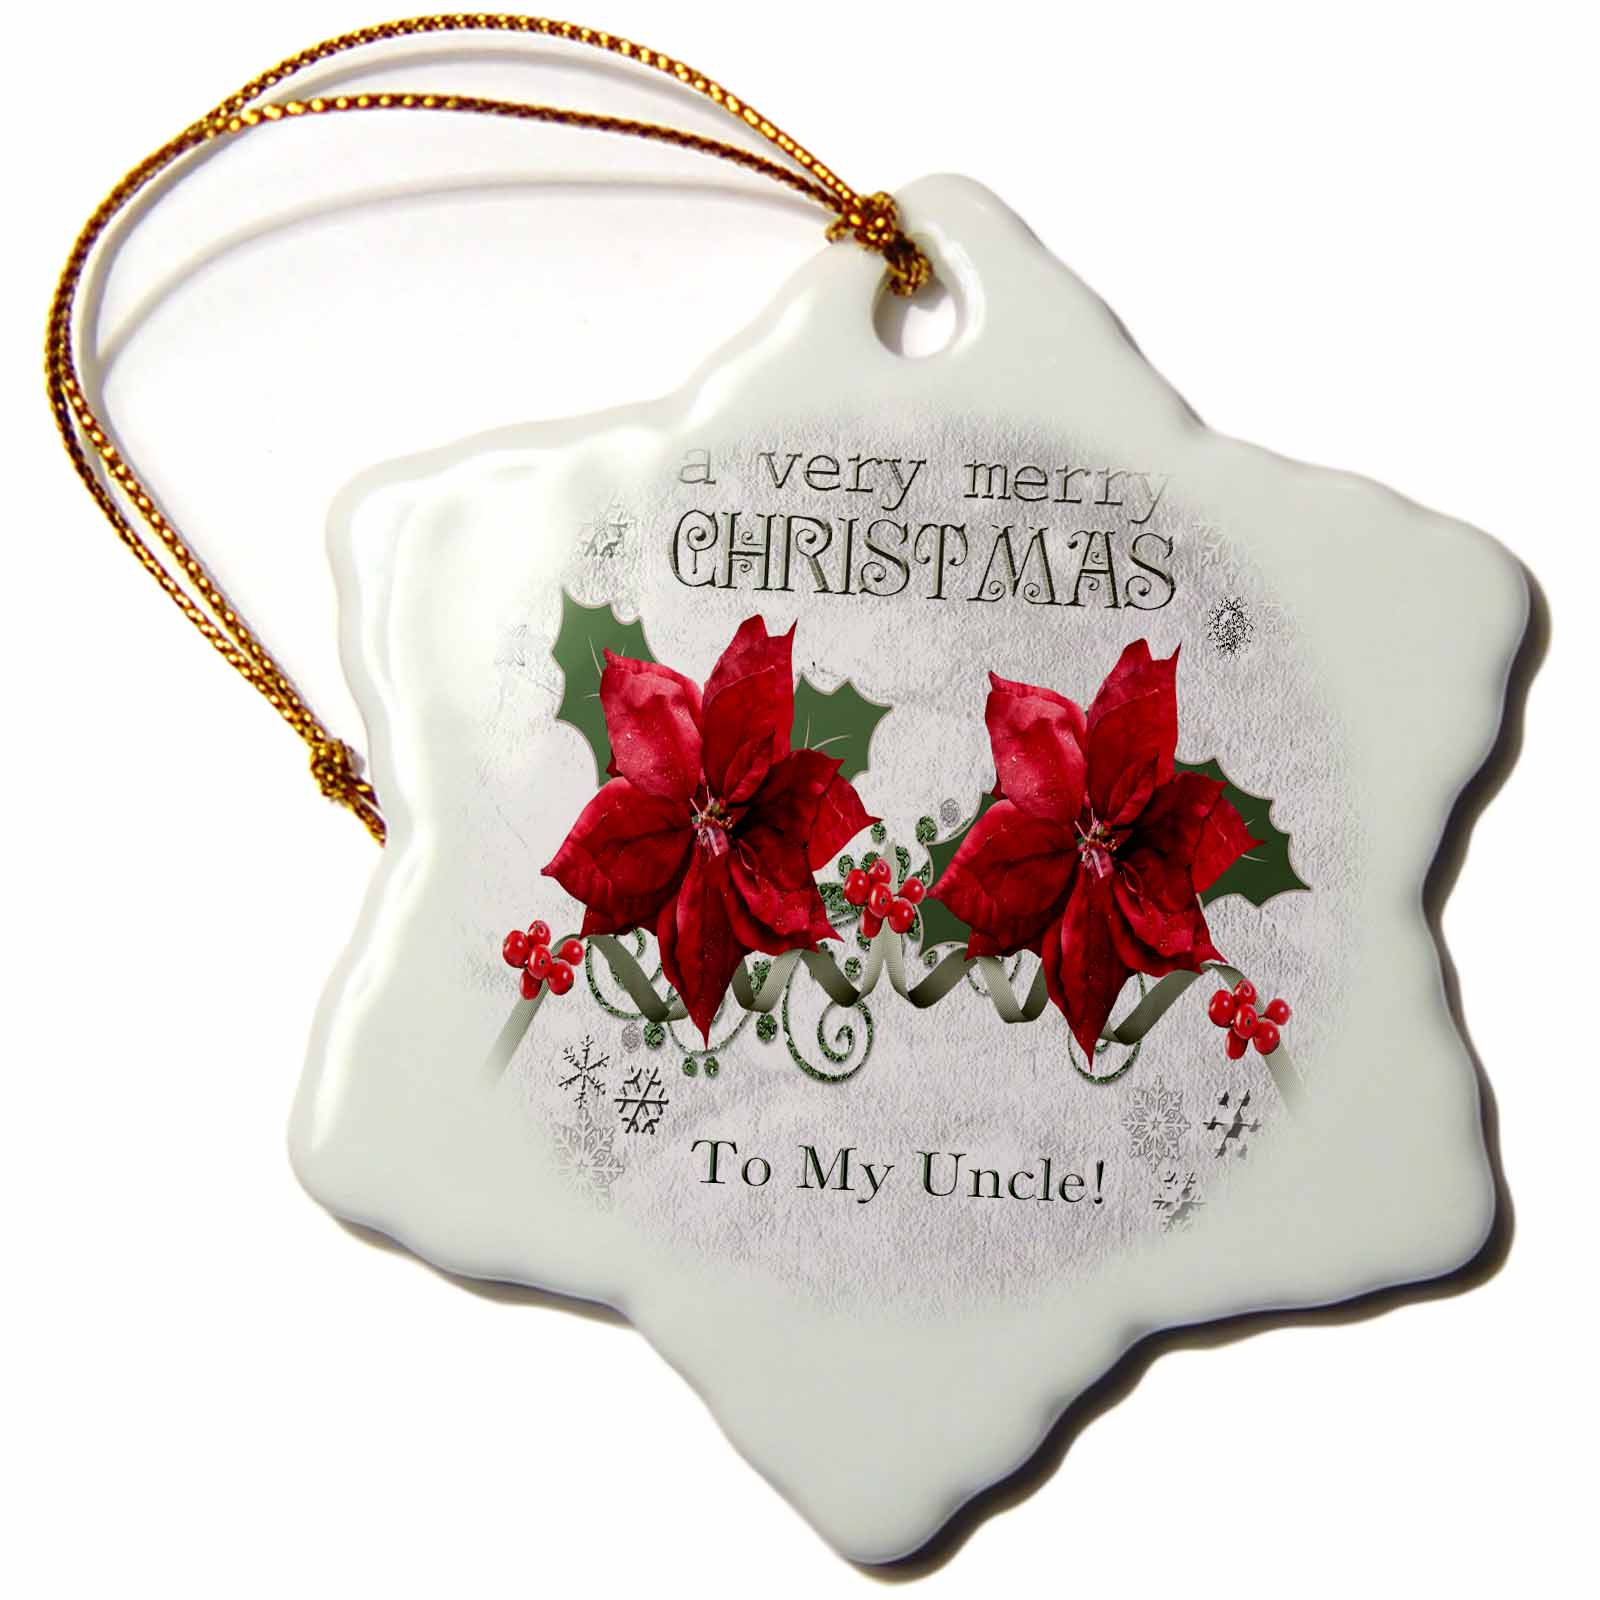 3dRose Berries and Poinsettias, a very merry Christmas, To My Uncle, Snowflake Ornament, Porcelain, 3-inch